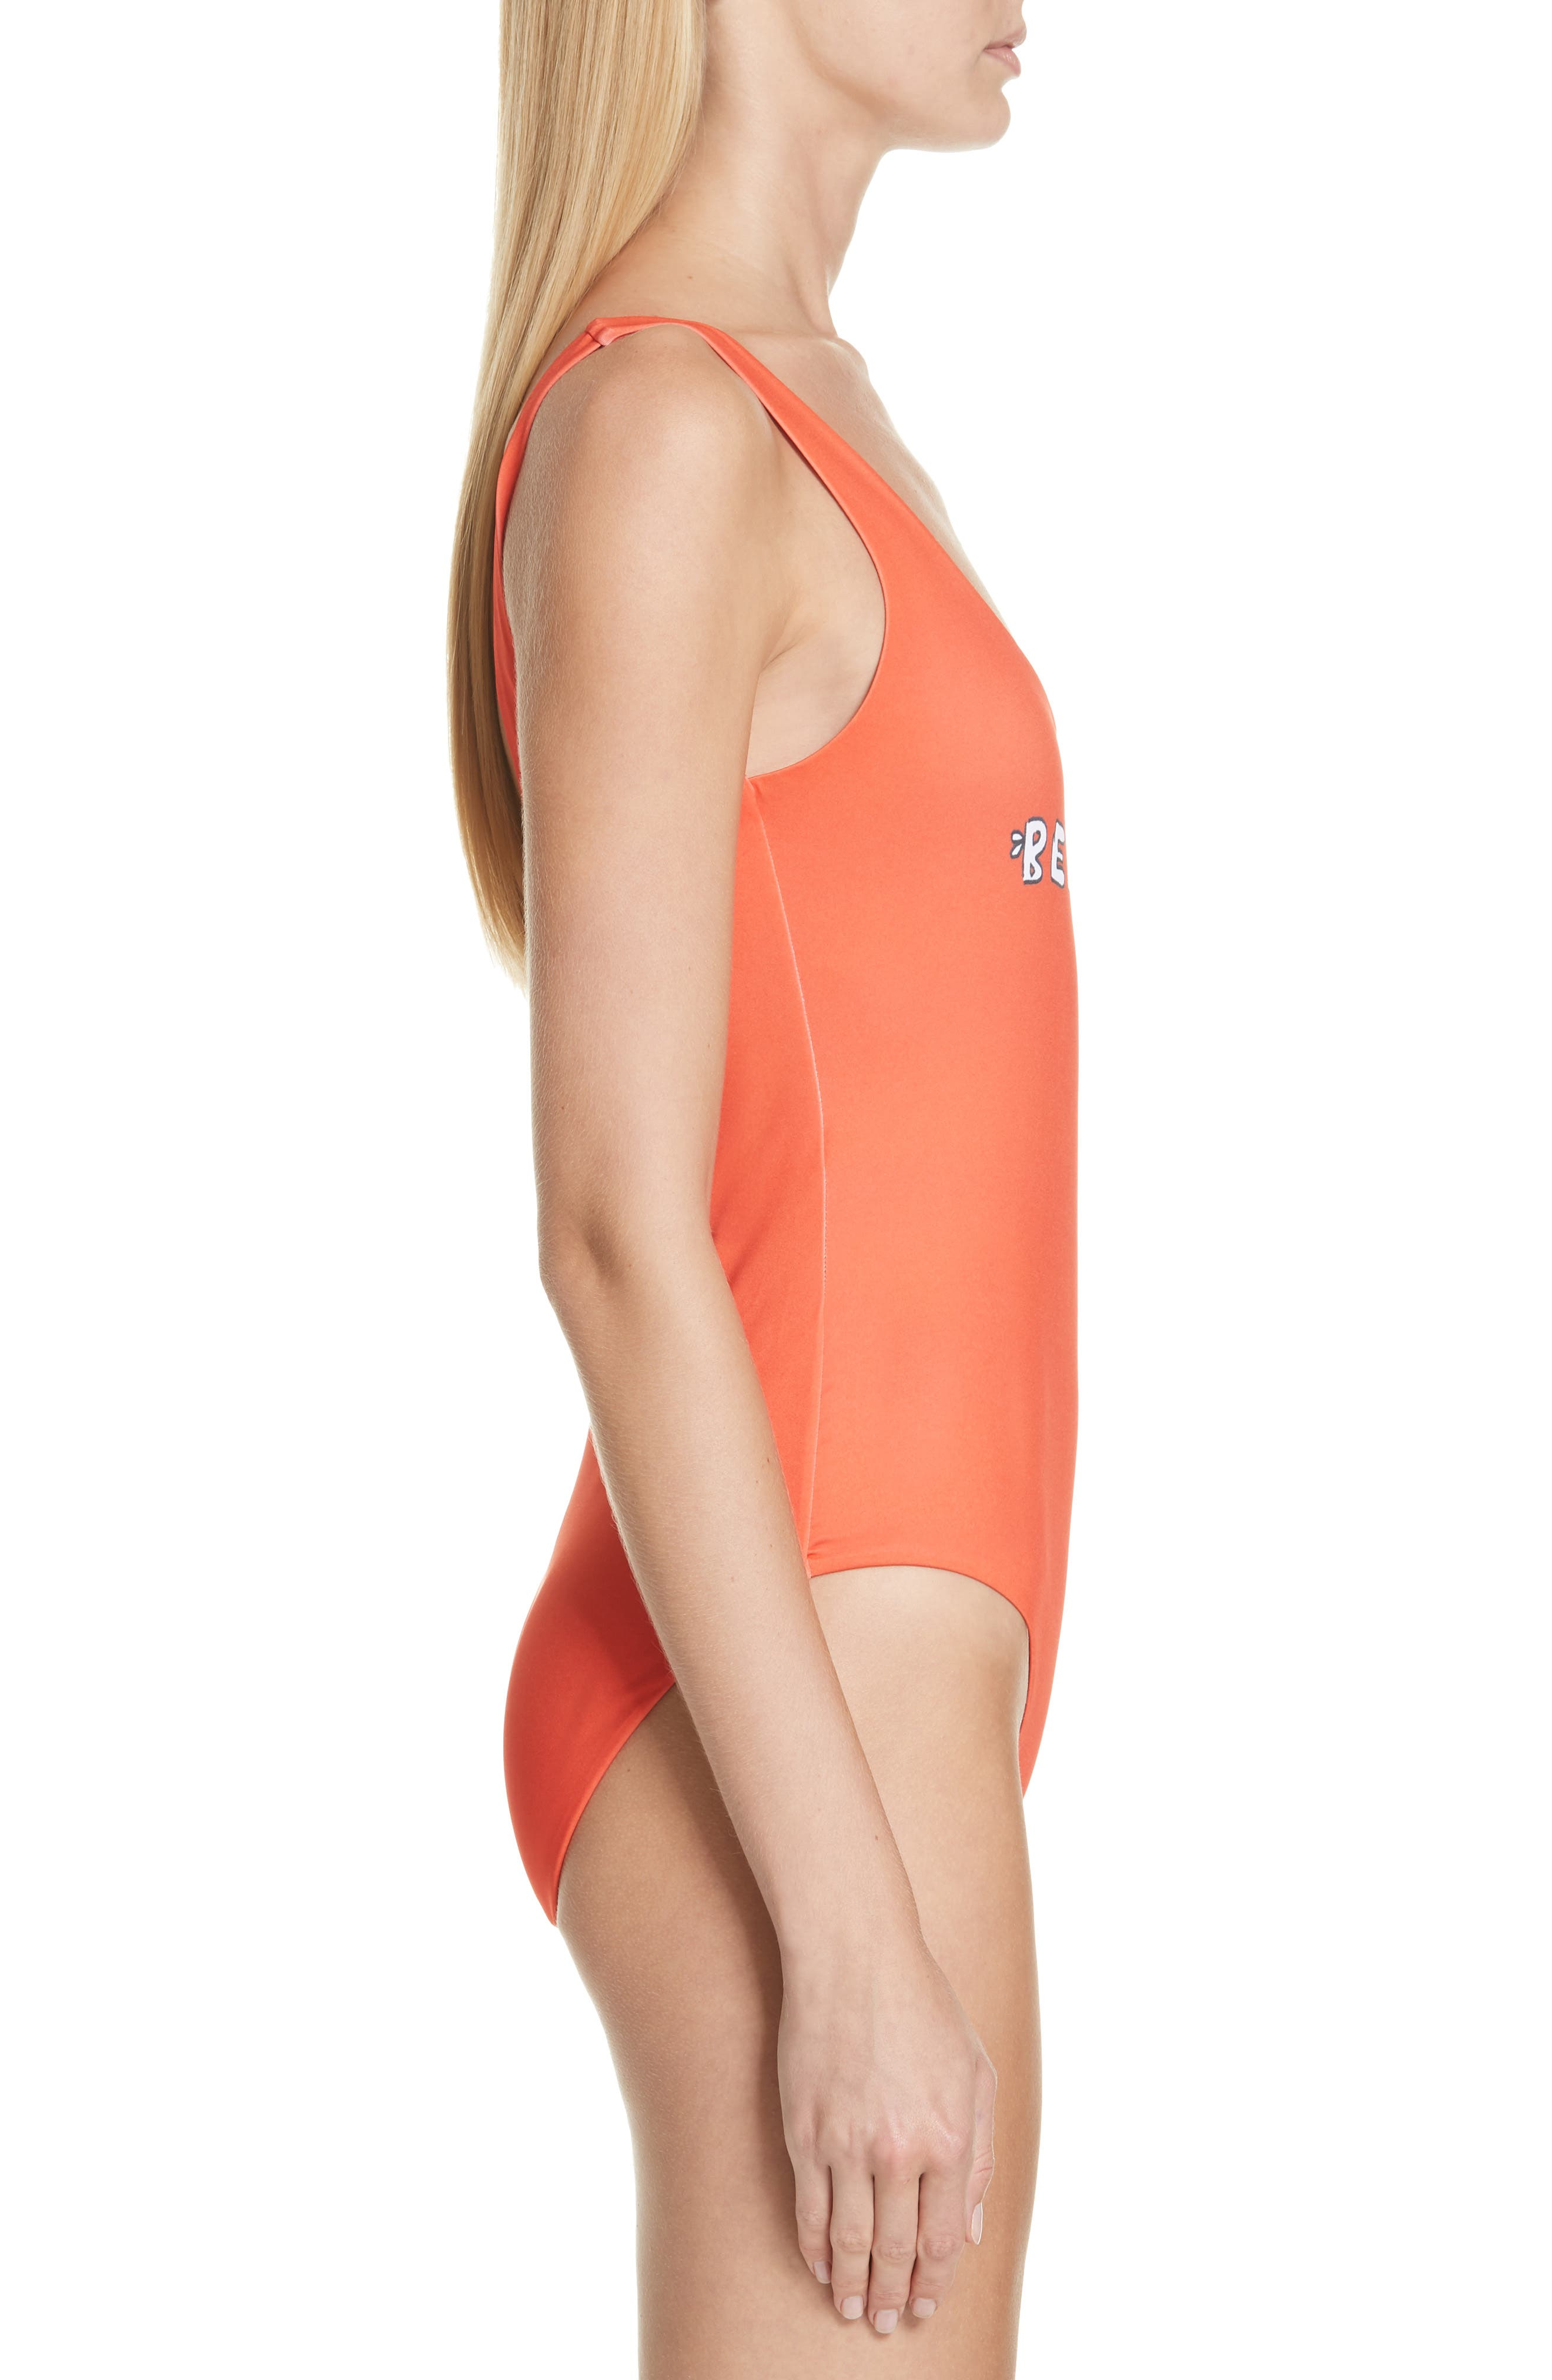 Profilic One-Piece Swimsuit,                             Alternate thumbnail 3, color,                             BIG APPLE RED